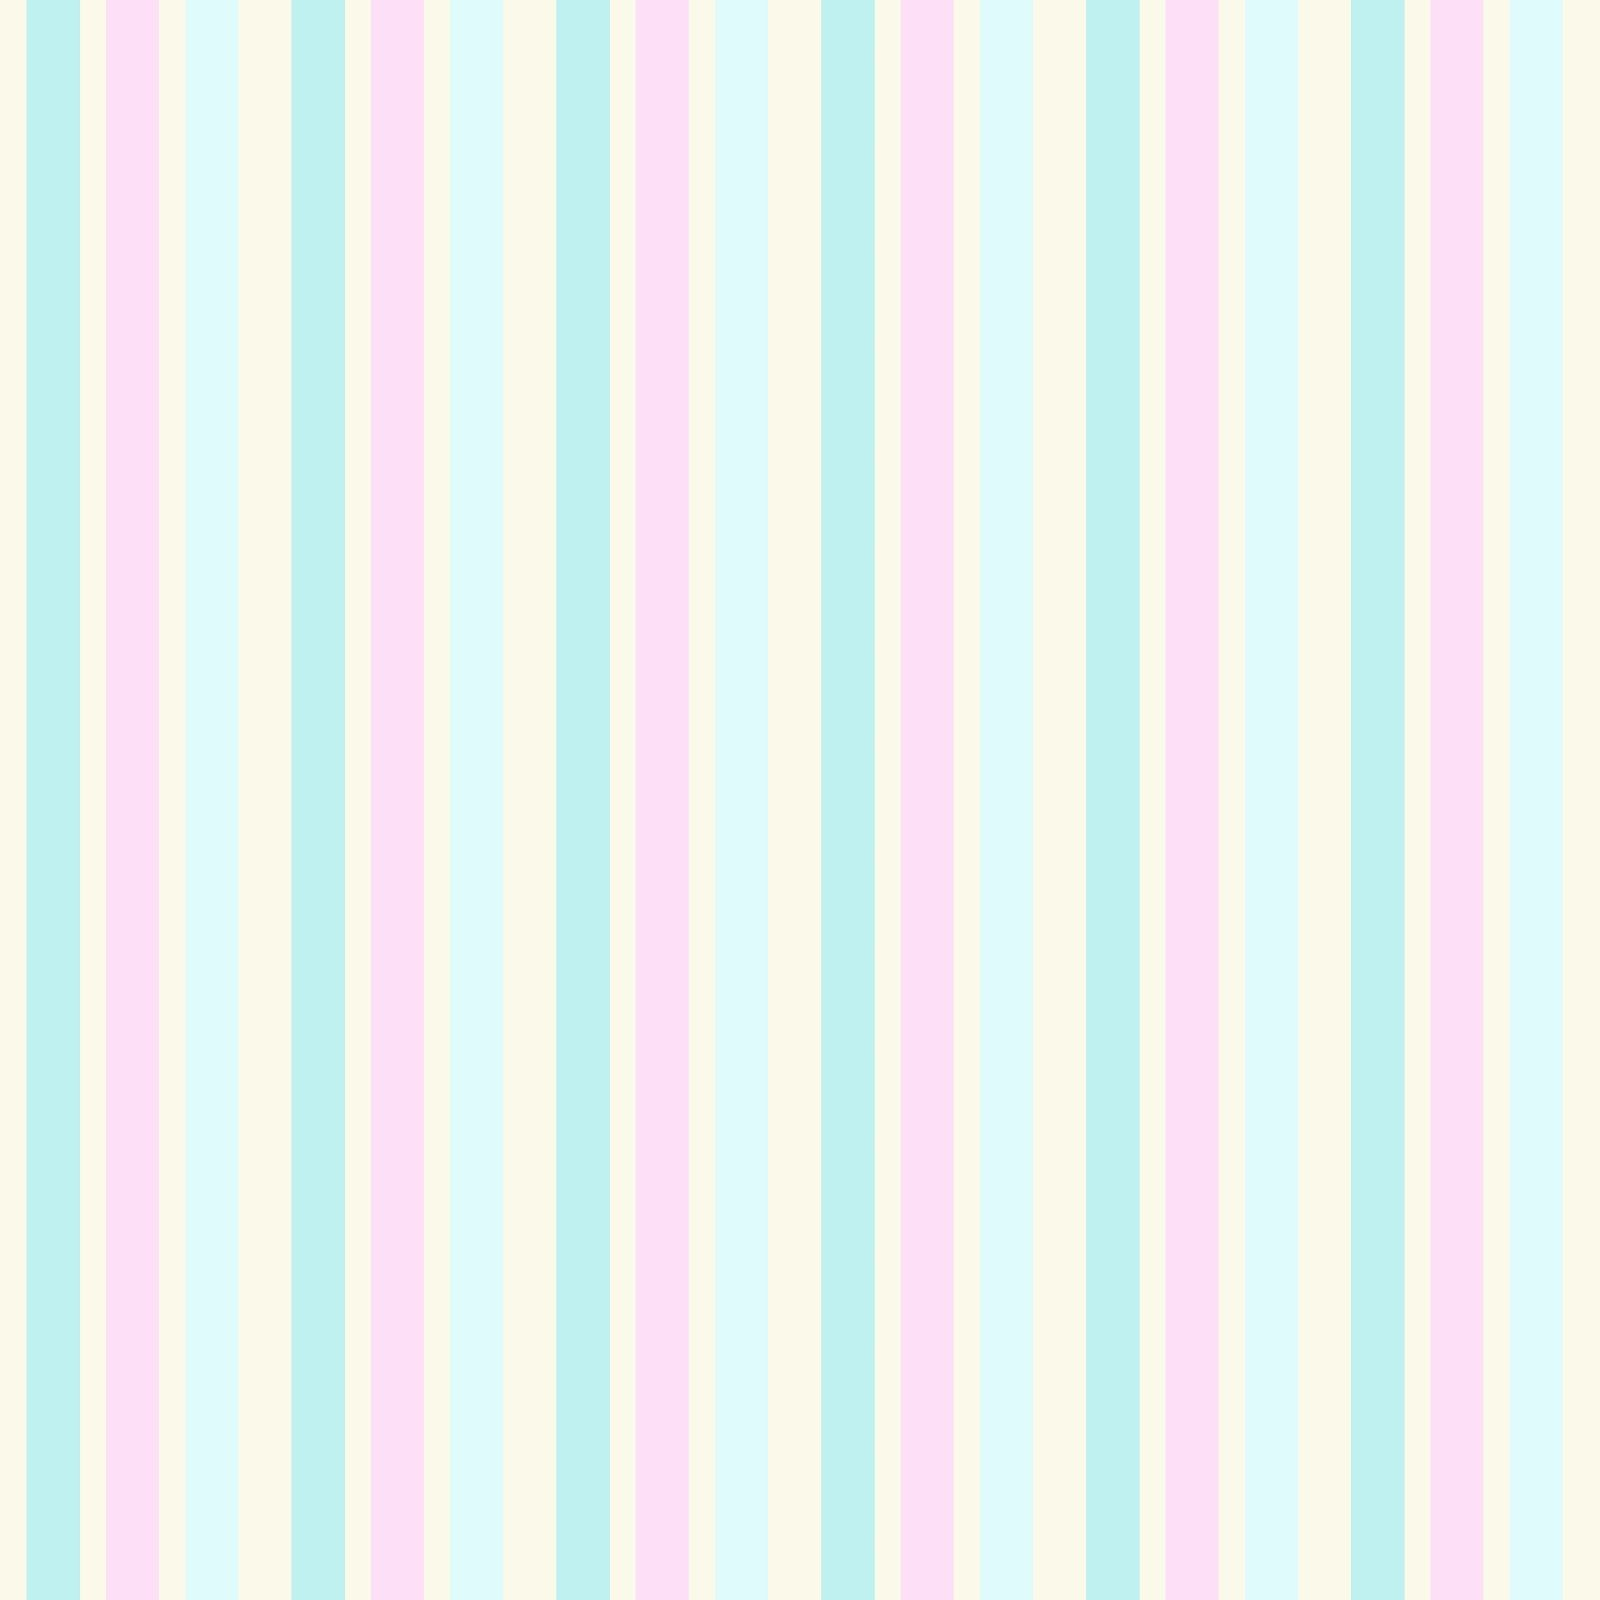 Scrapbook paper as wallpaper - Images Of St D Amour Free Digital Scrapbook Paper Pink Blue And Cream Wallpaper